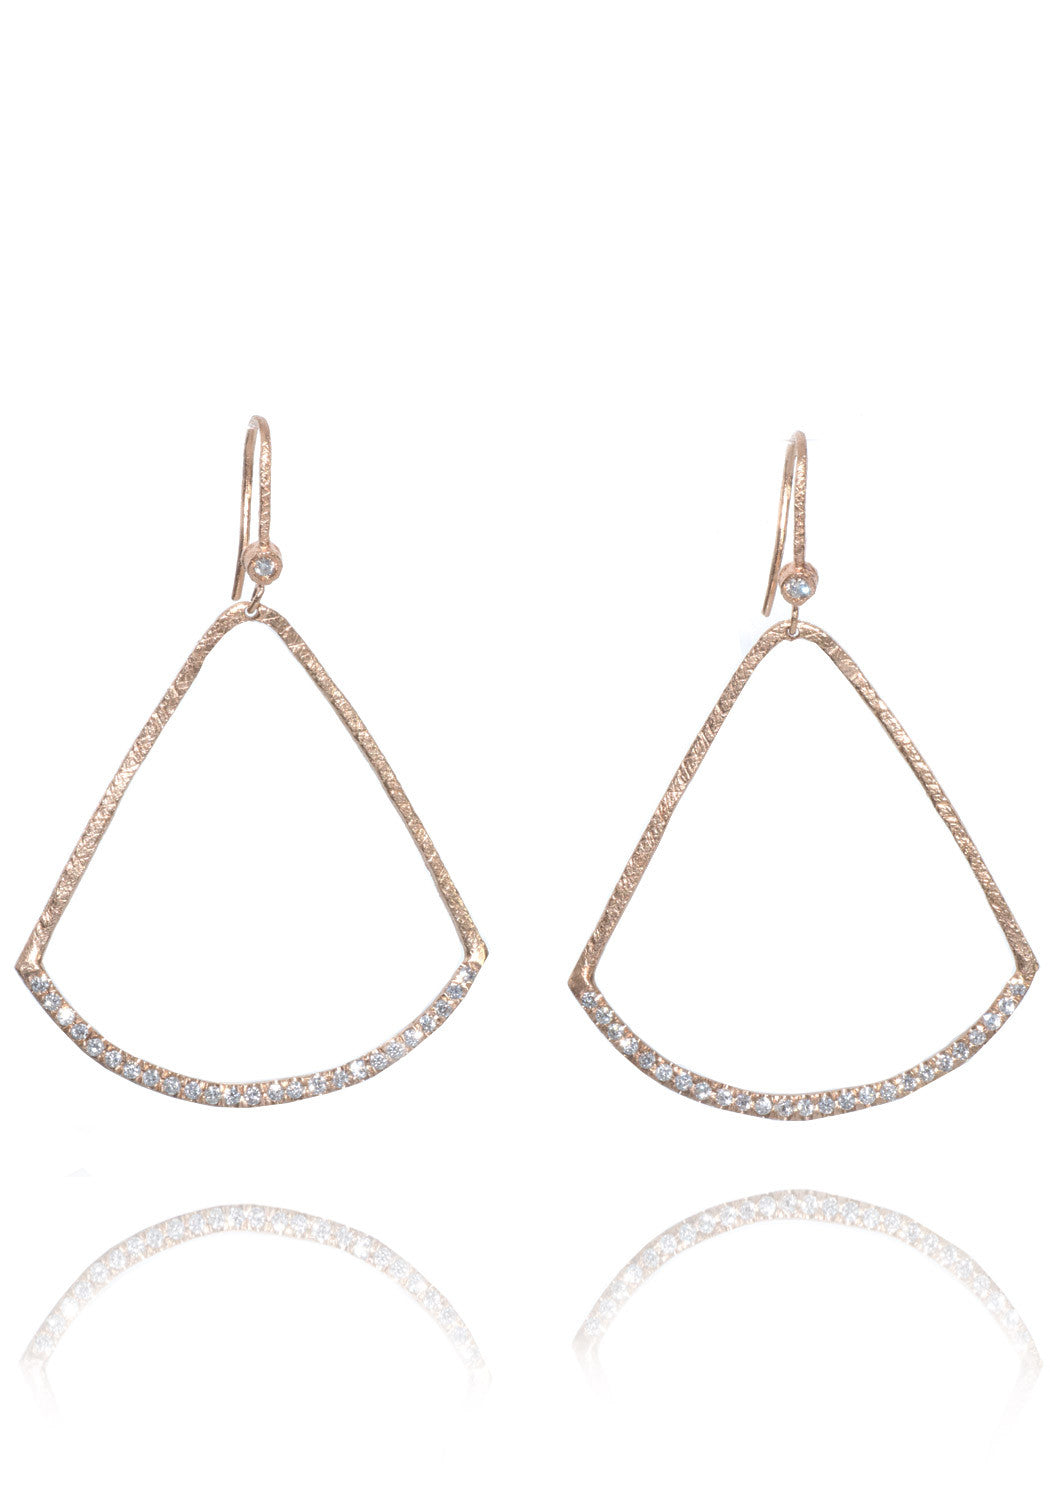 Dominique Cohen Diamond Teardrop Earrings